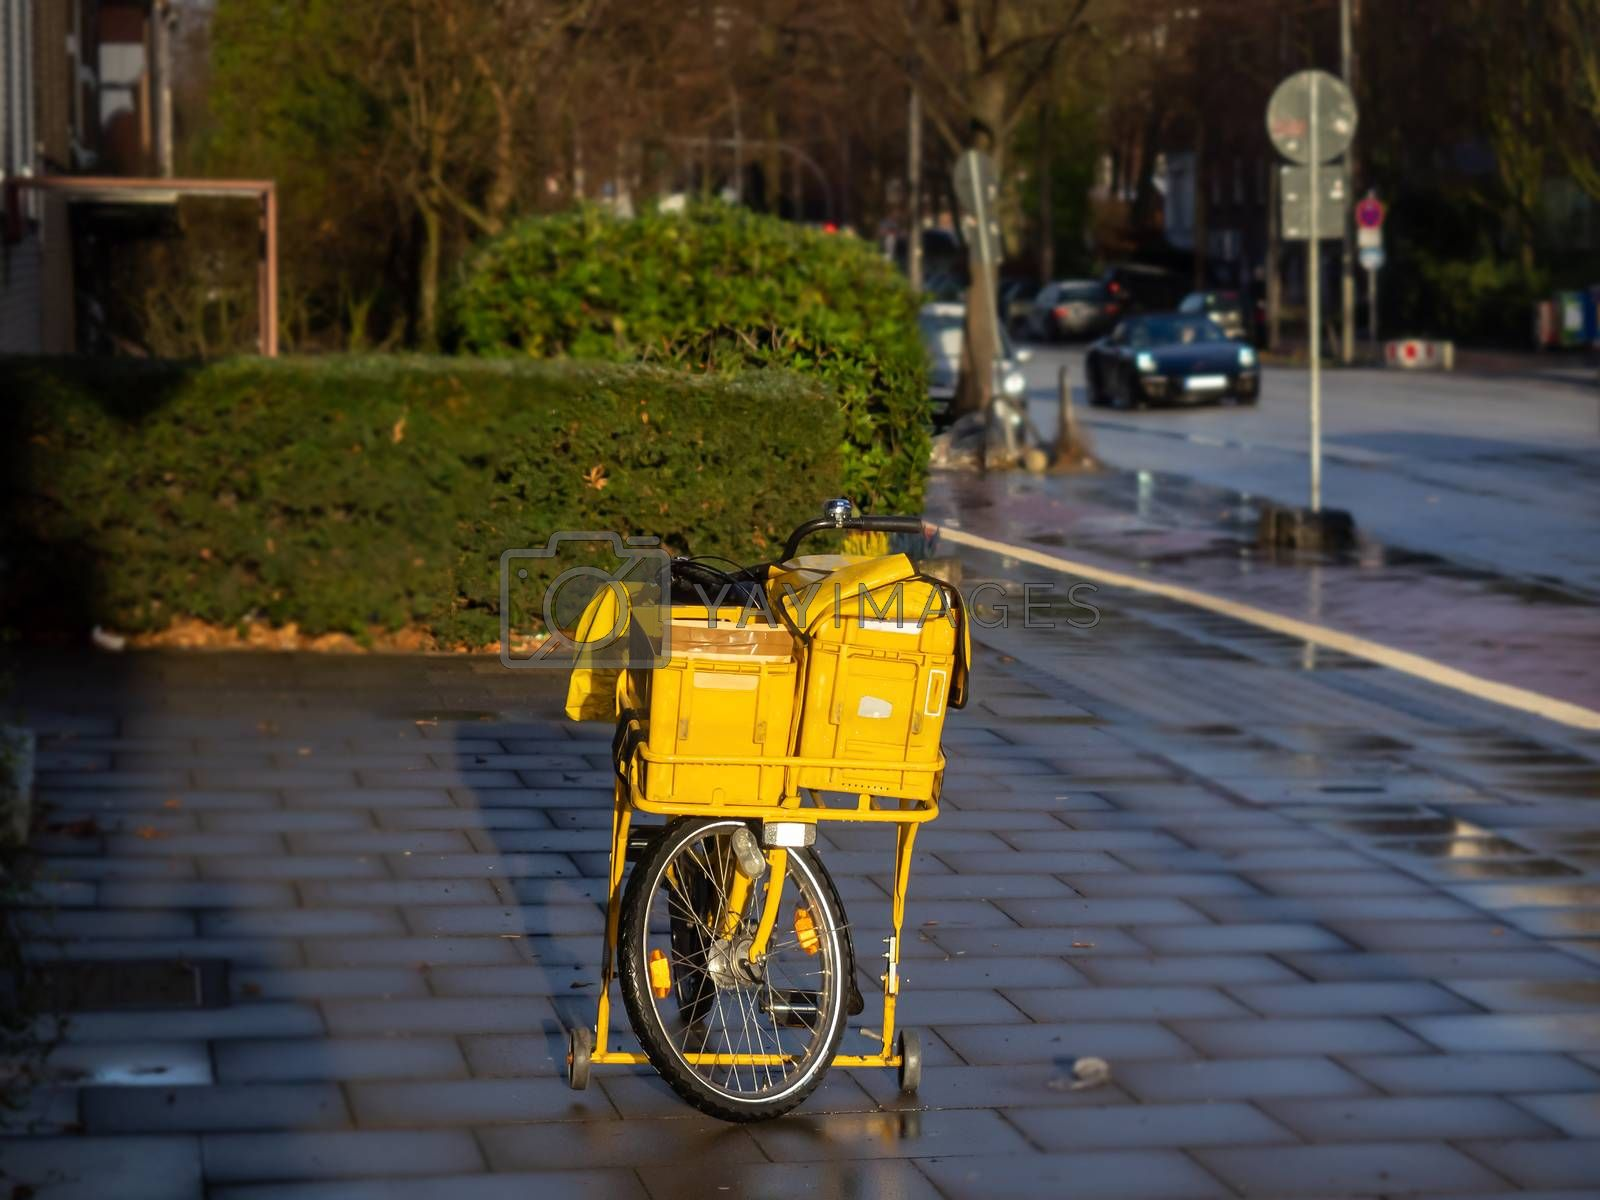 A yellow bicycle from the postman, alone in the street by Sandra Fotodesign